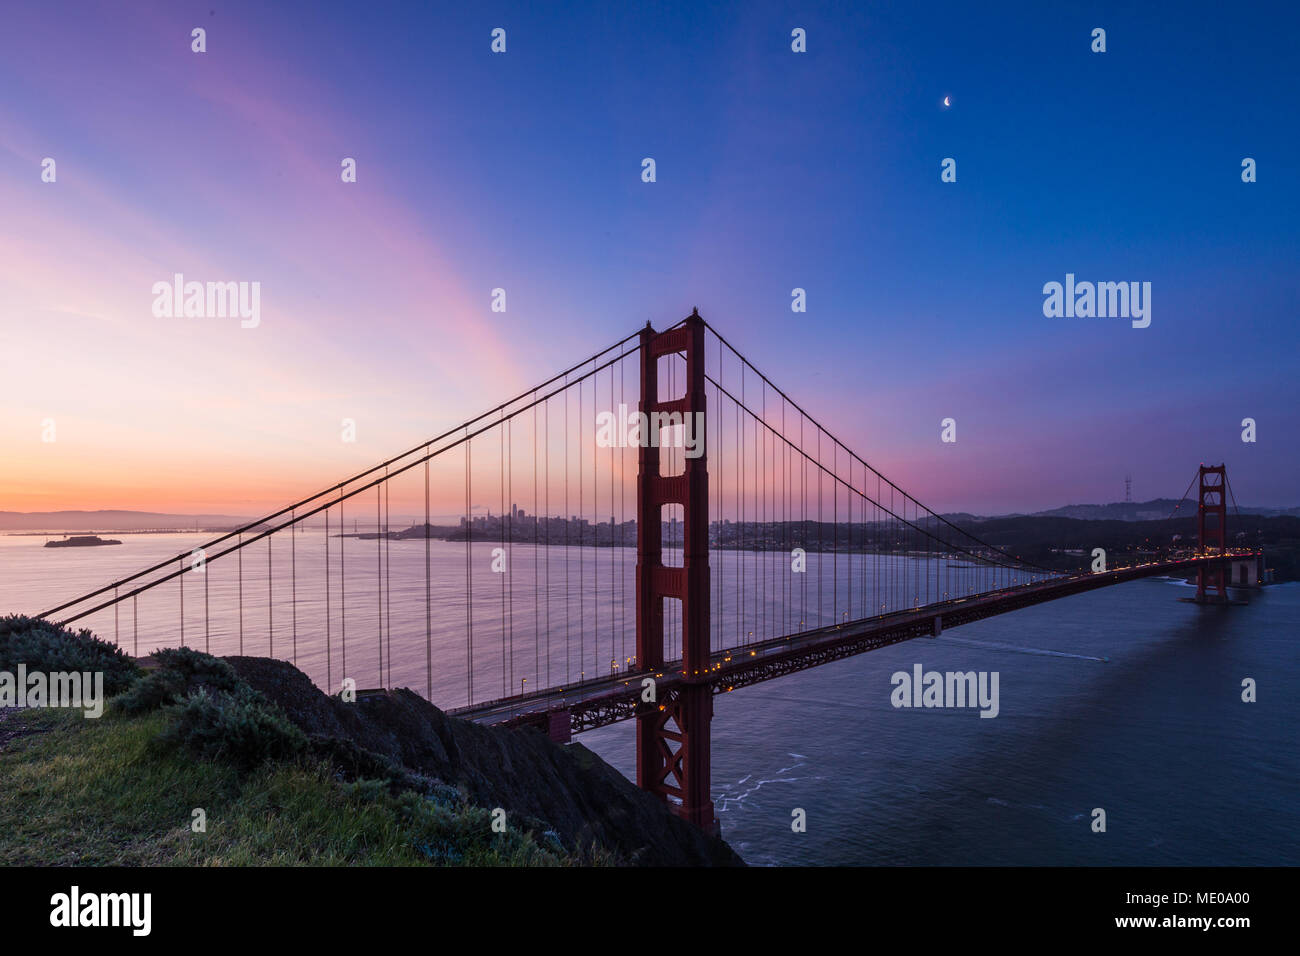 Sunrise view of Alcatraz, San Francisco and the Golden Gate Bridge from Battery Spencer - Stock Image